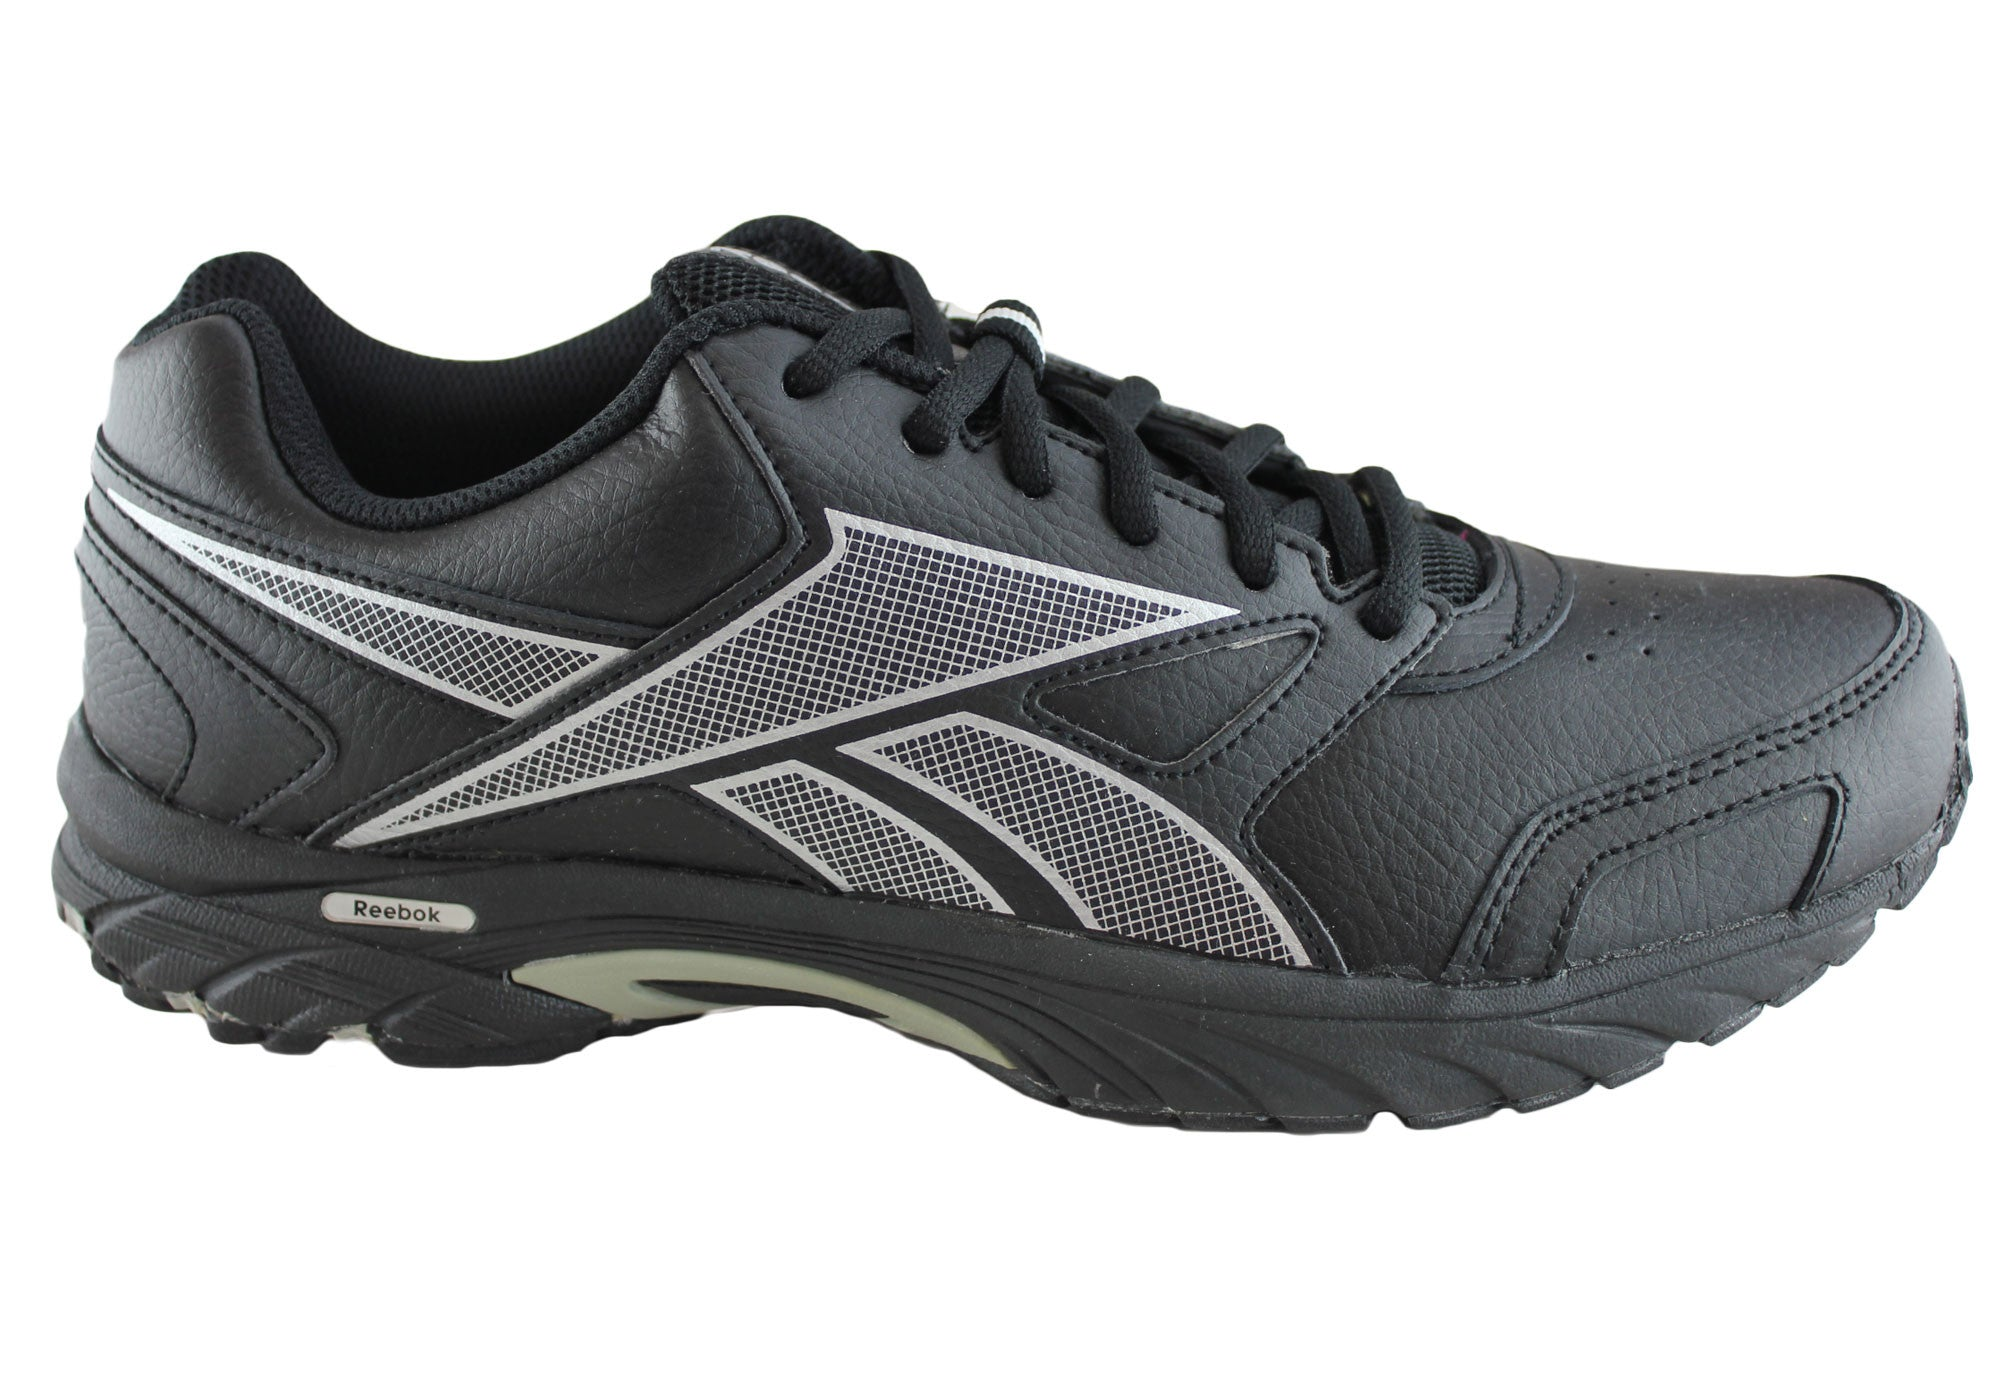 0dded9acd708 New Mens Reebok Triplehall Leather Running Walking Shoes